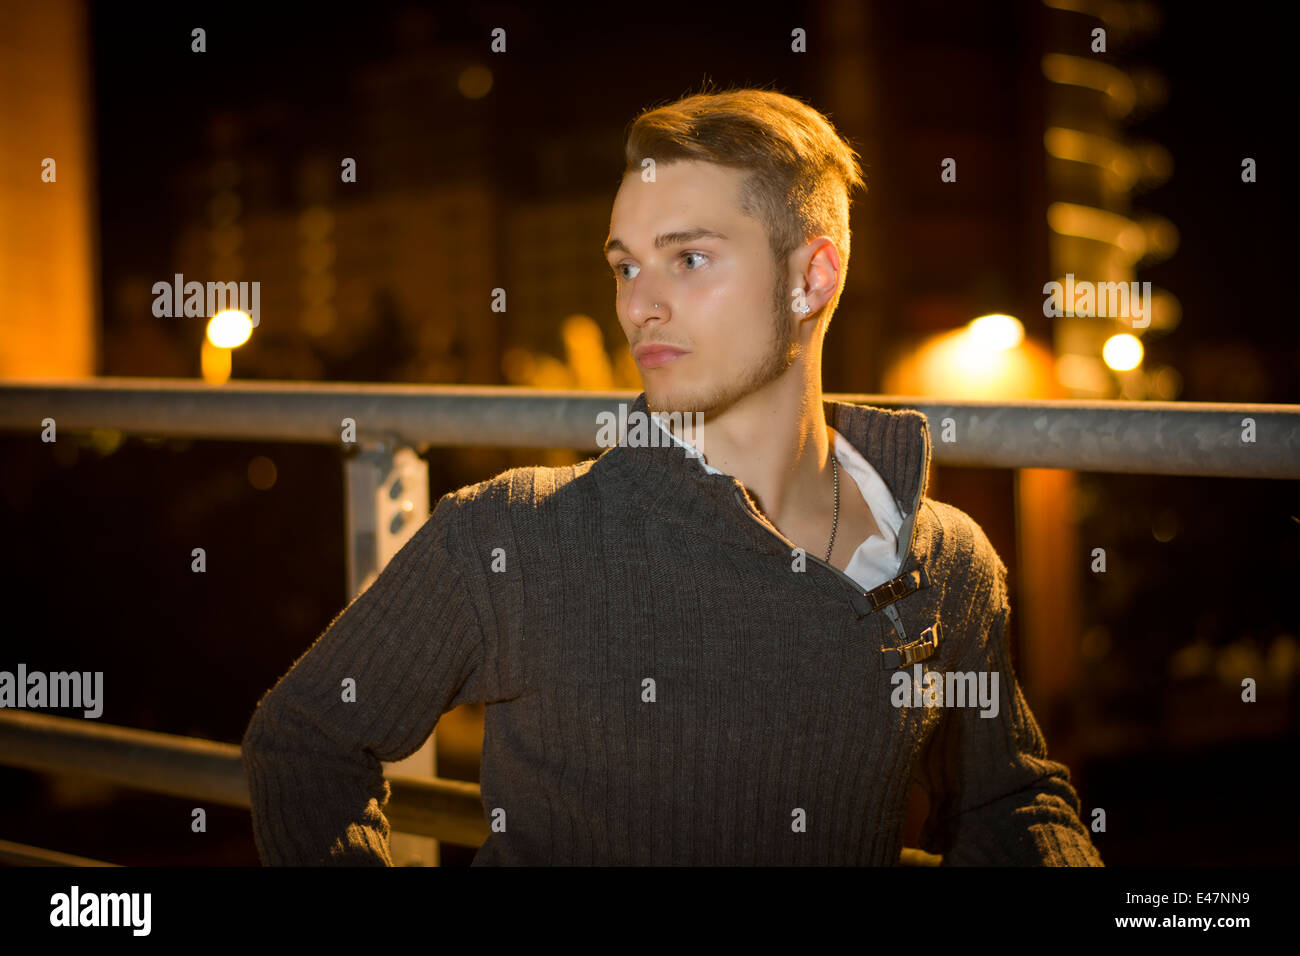 Handsome blond young man alone in urban setting, looking away, night shot - Stock Image